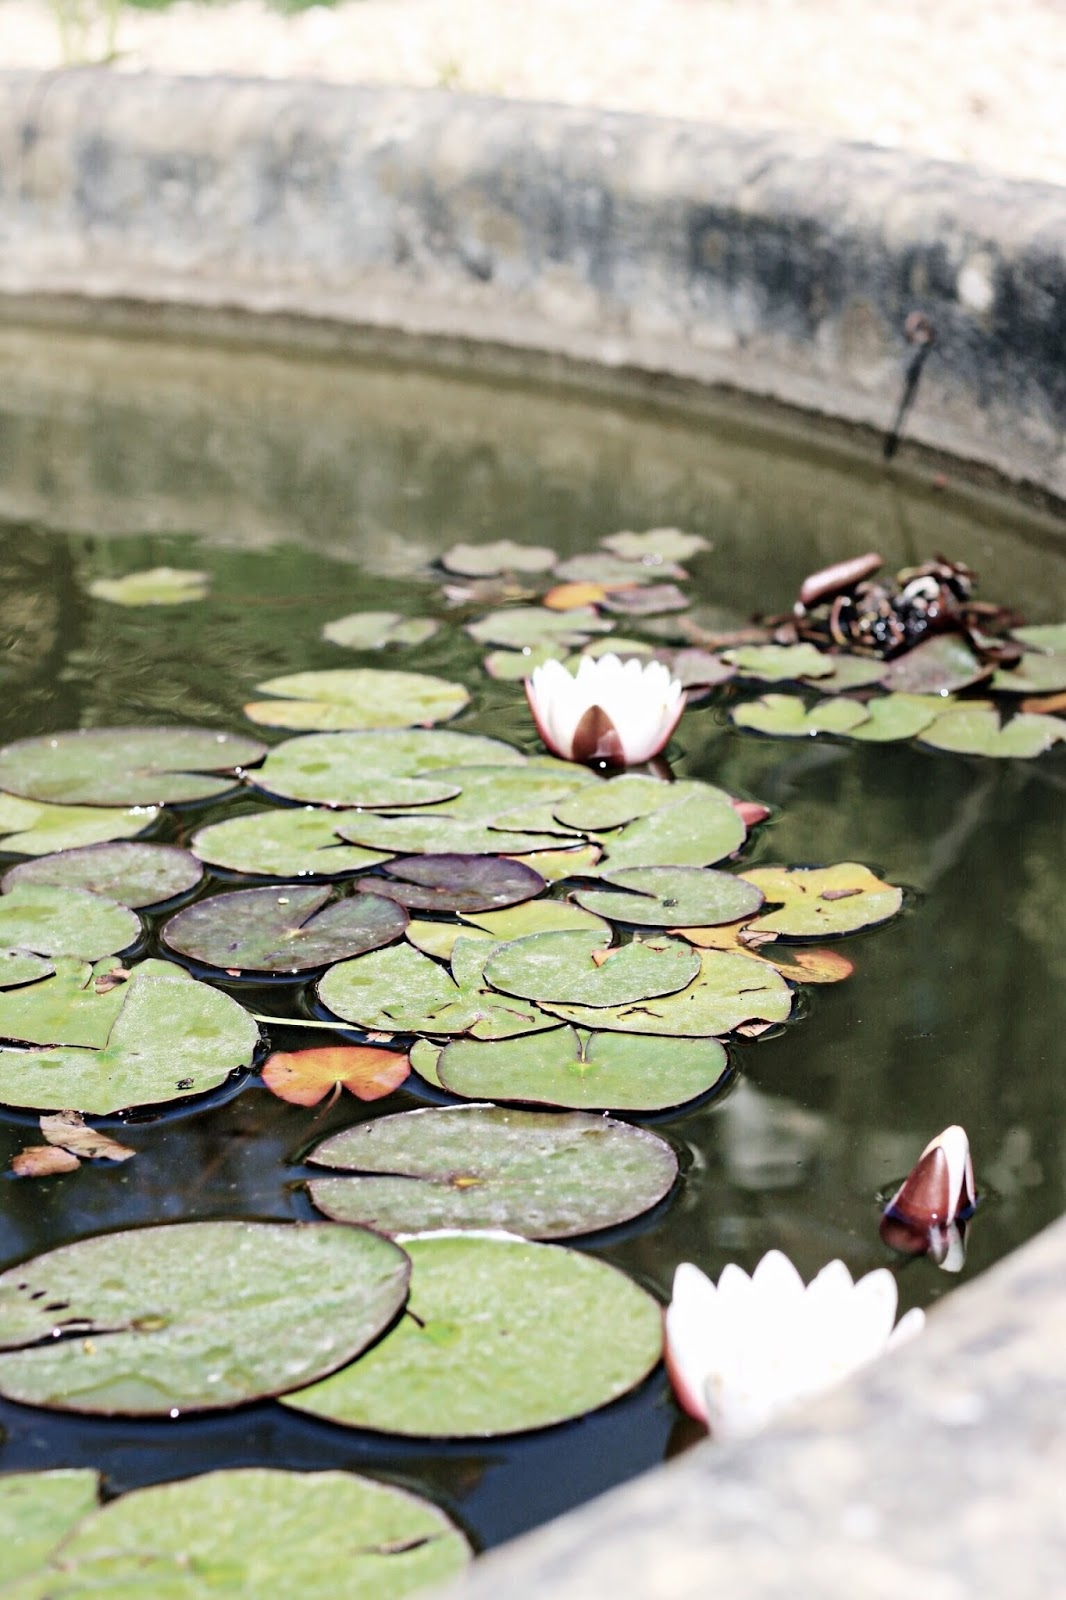 Lilies on pond water